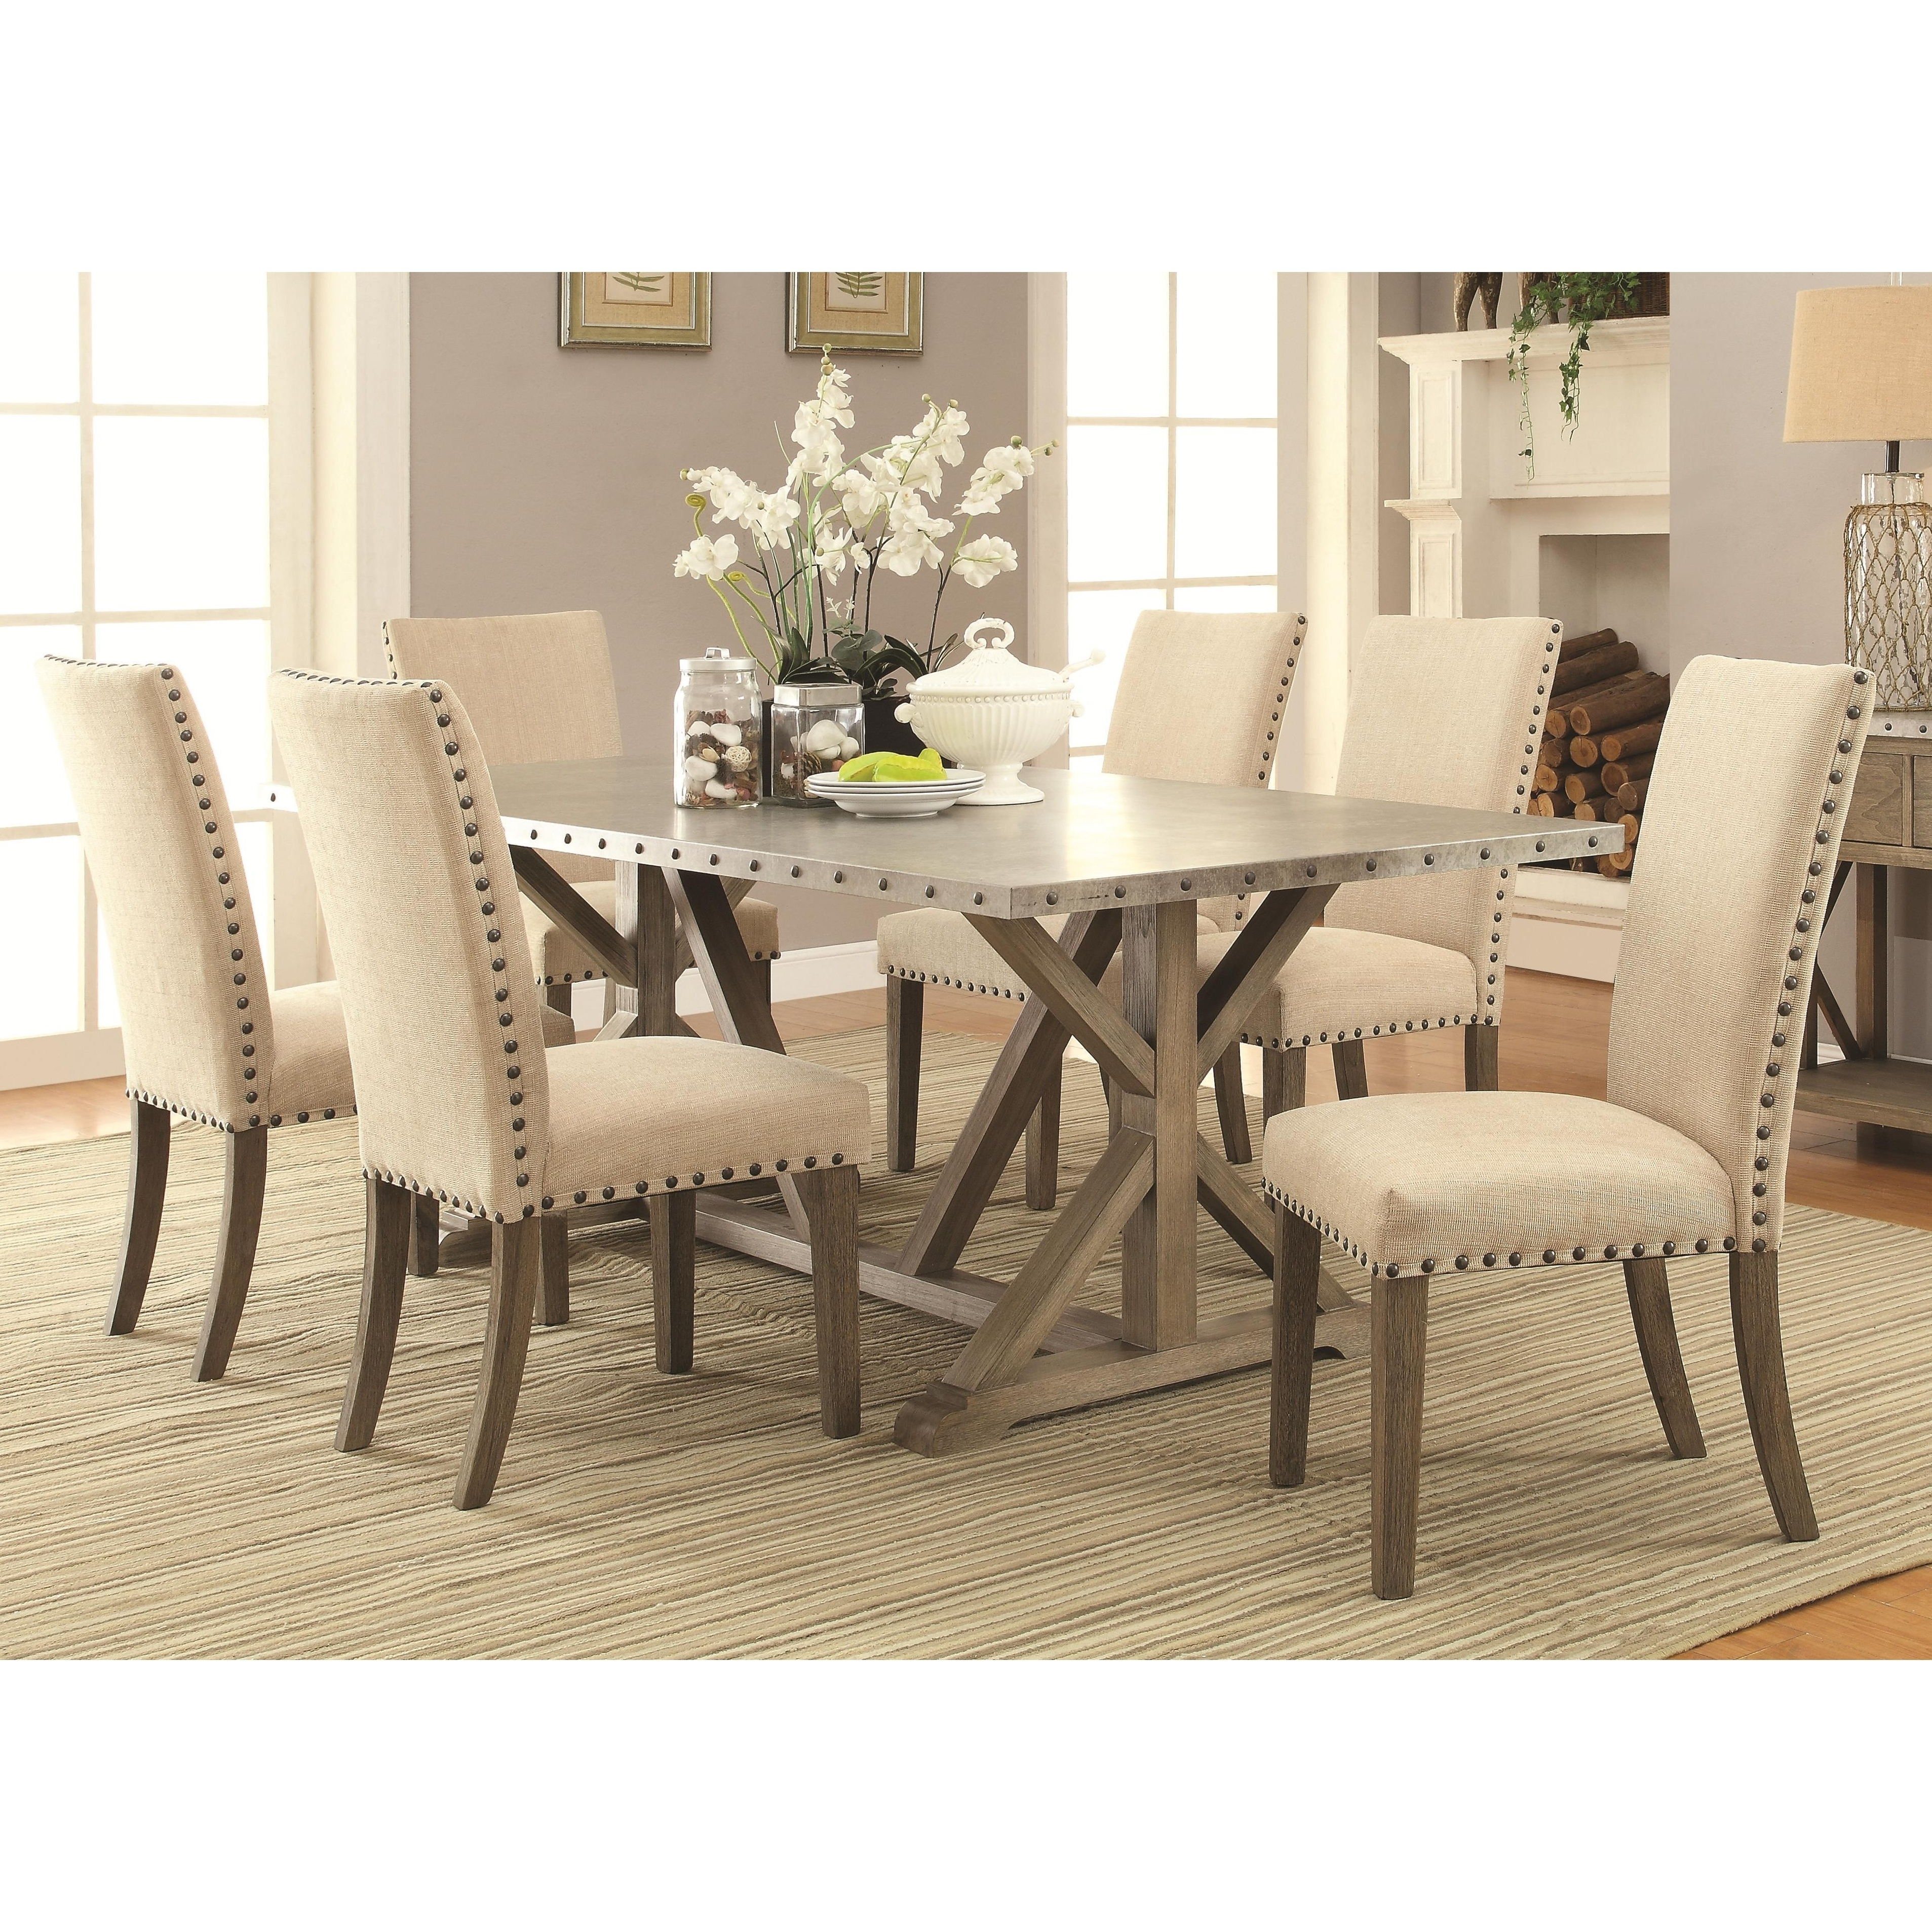 2018 Cheap Dining Tables Regarding Buy Cheap Dining Table Set Inspirational Chair Dark Wood Dining (View 9 of 25)